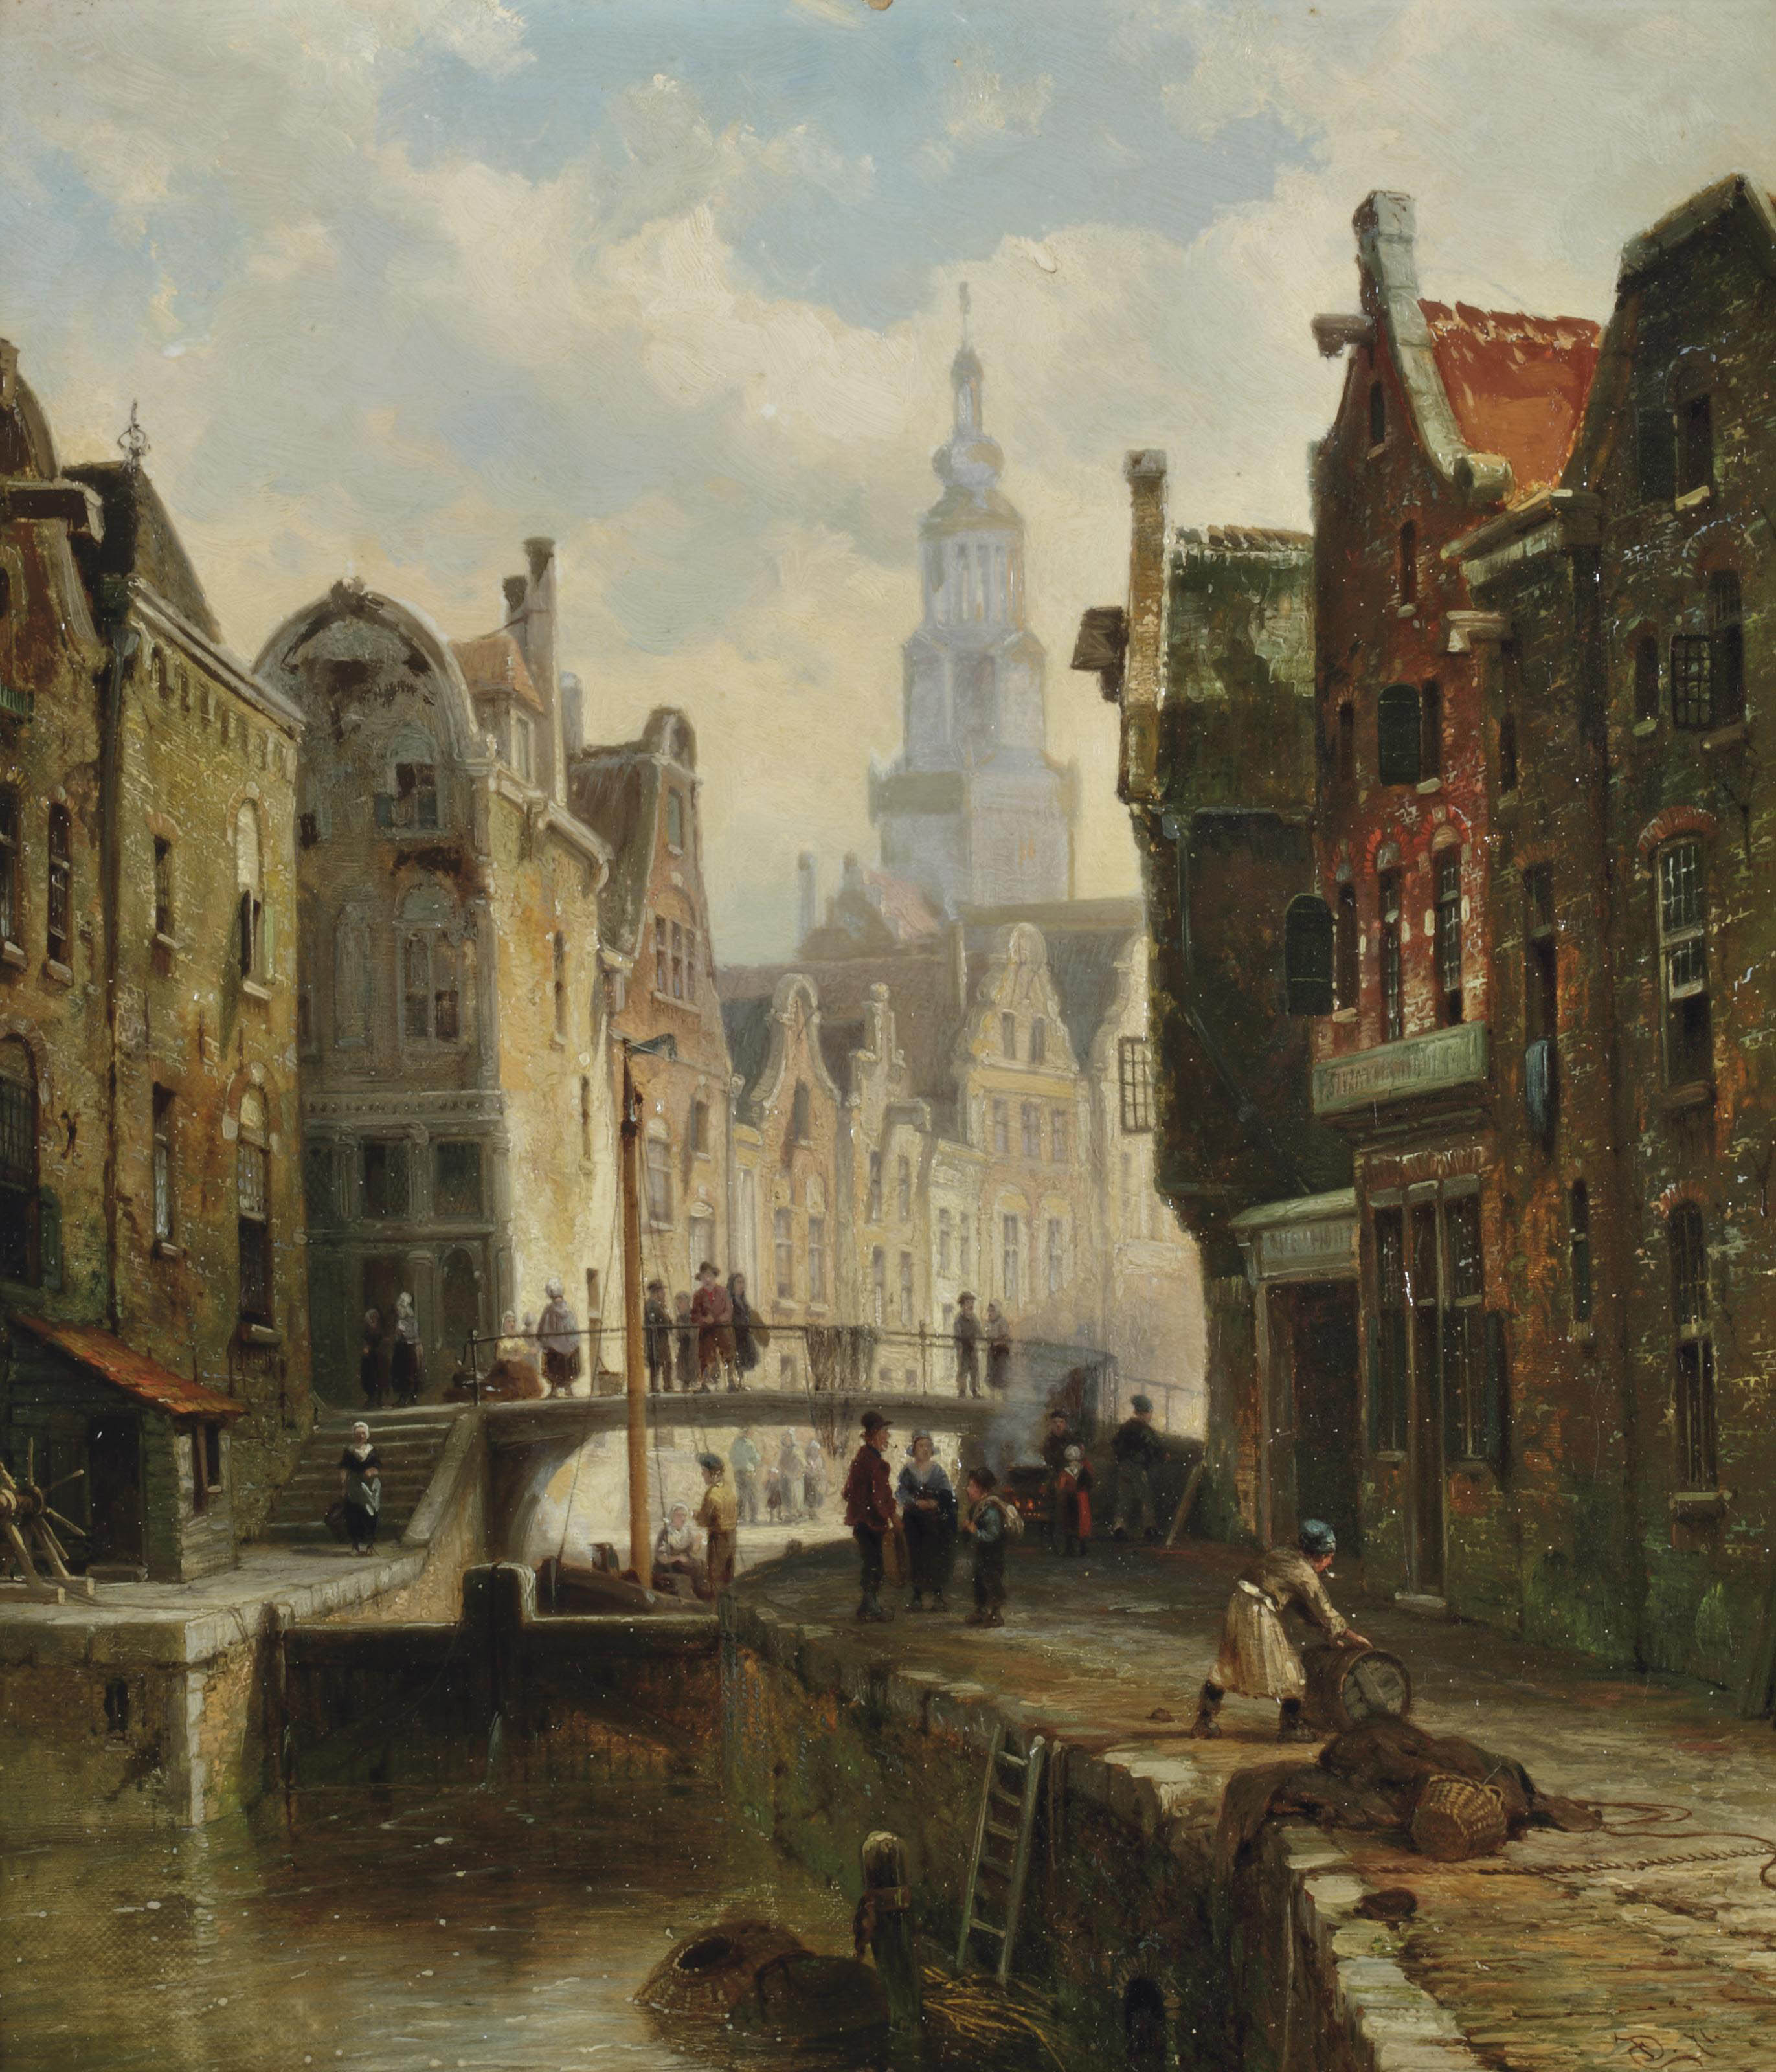 A townview with figures by a canal and a church in the background